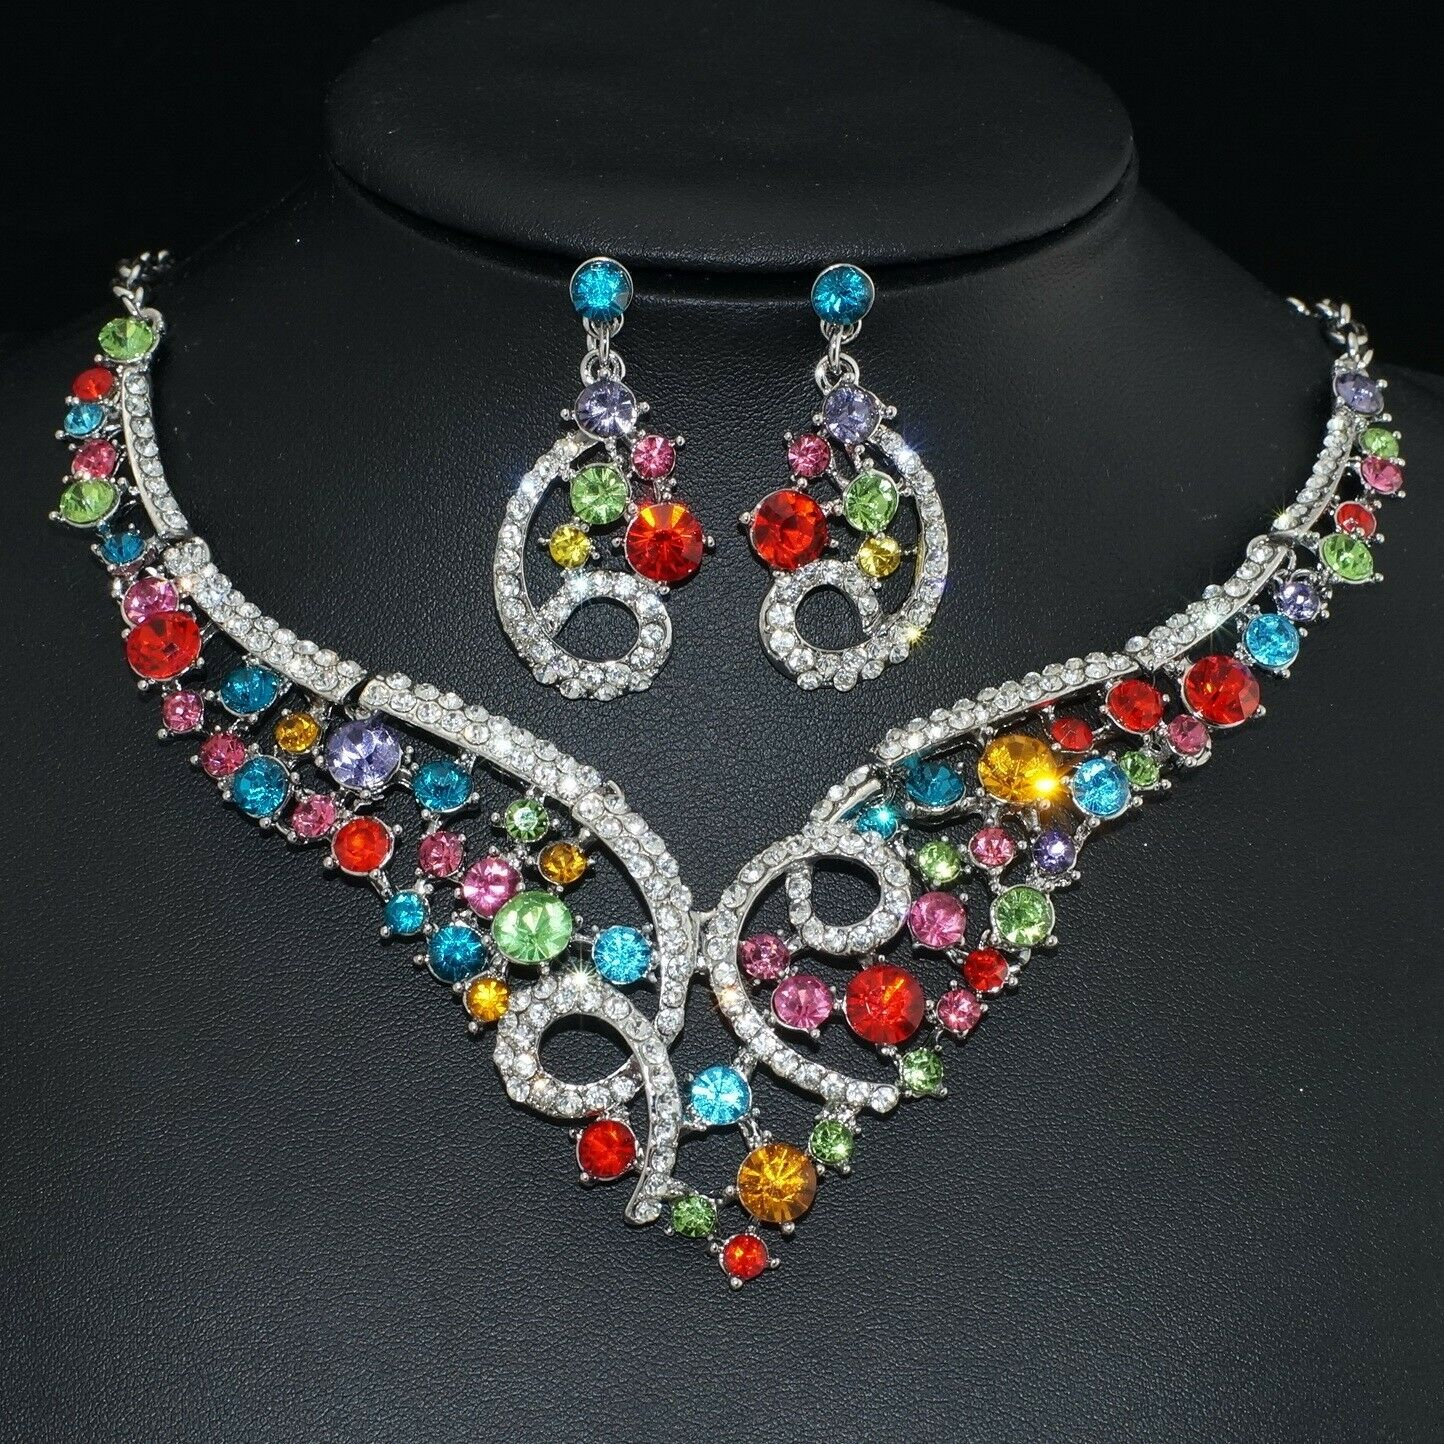 YT255 Multi-Colour Rhinestone Crystal Earrings Necklace Set Bridal Party Gift